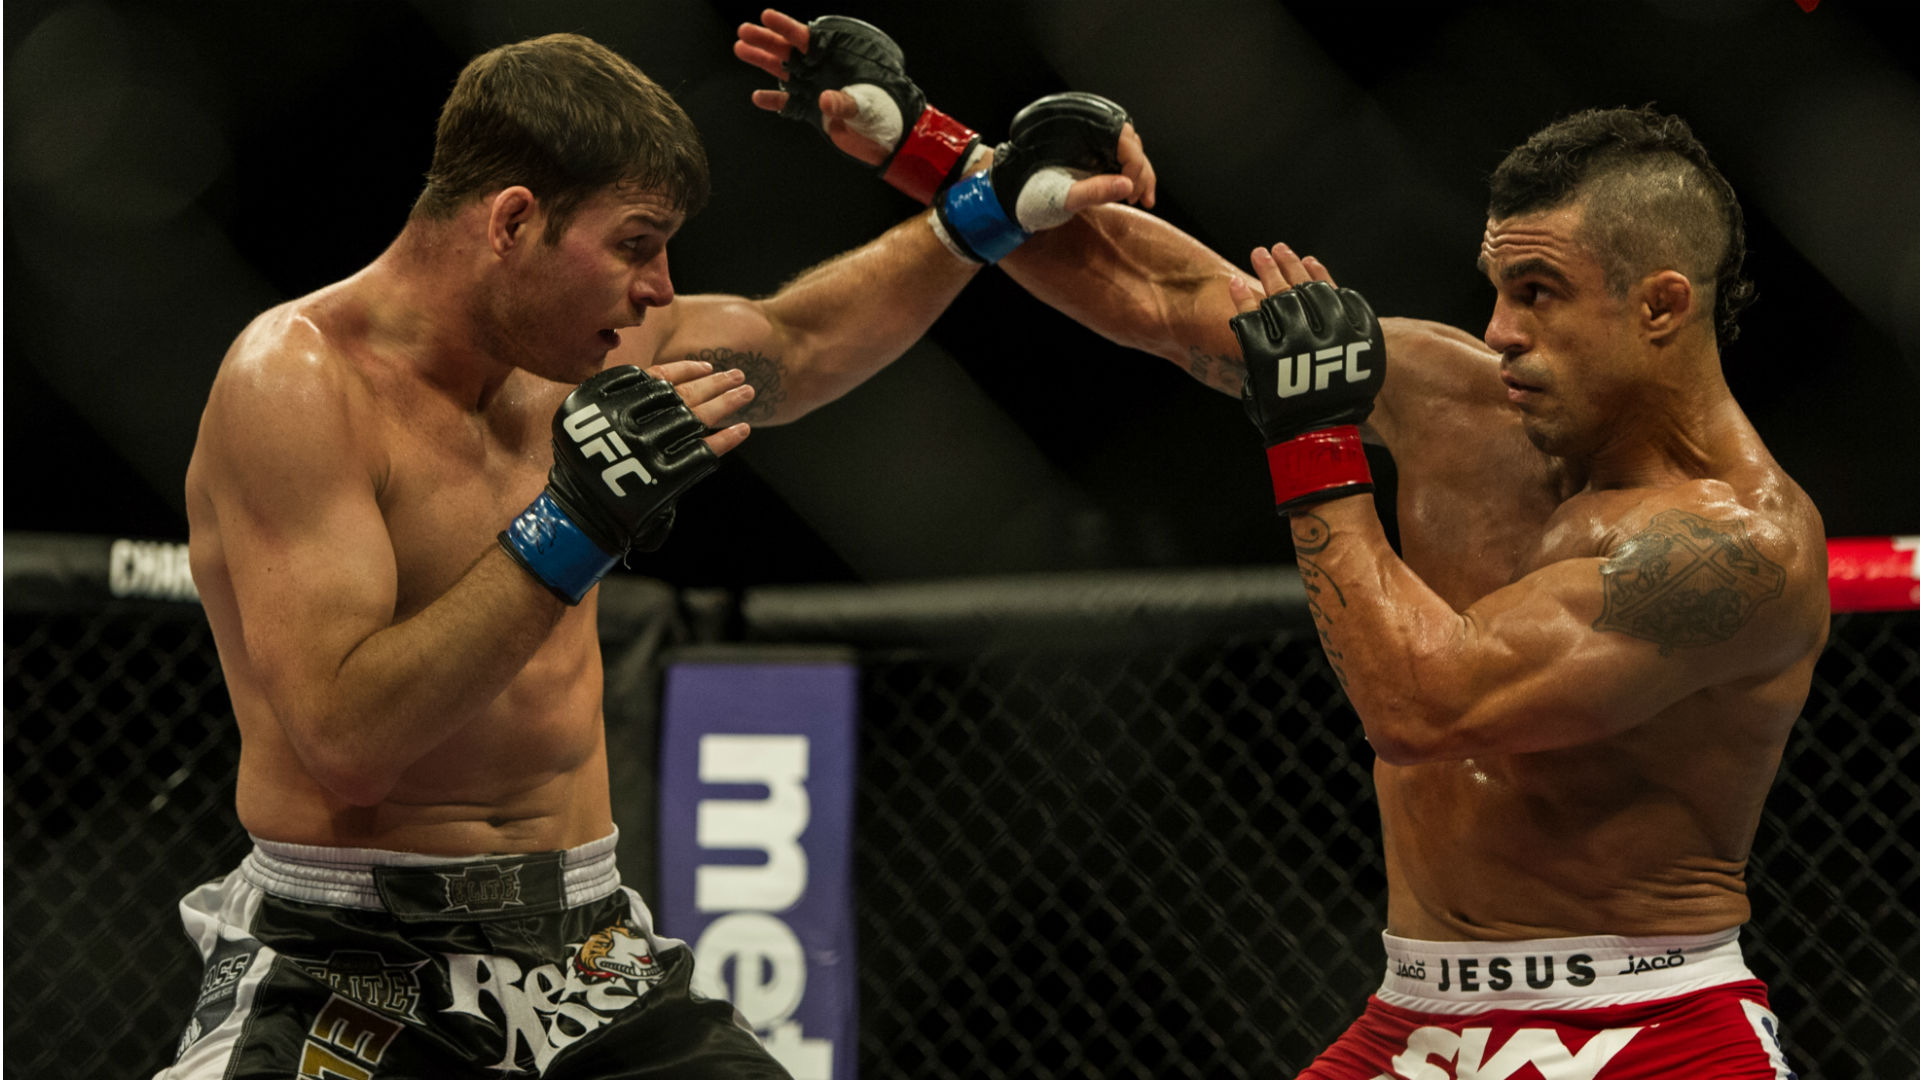 UFC 187 odds and picks - Belfort offers betting value vs. Weidman on undercard